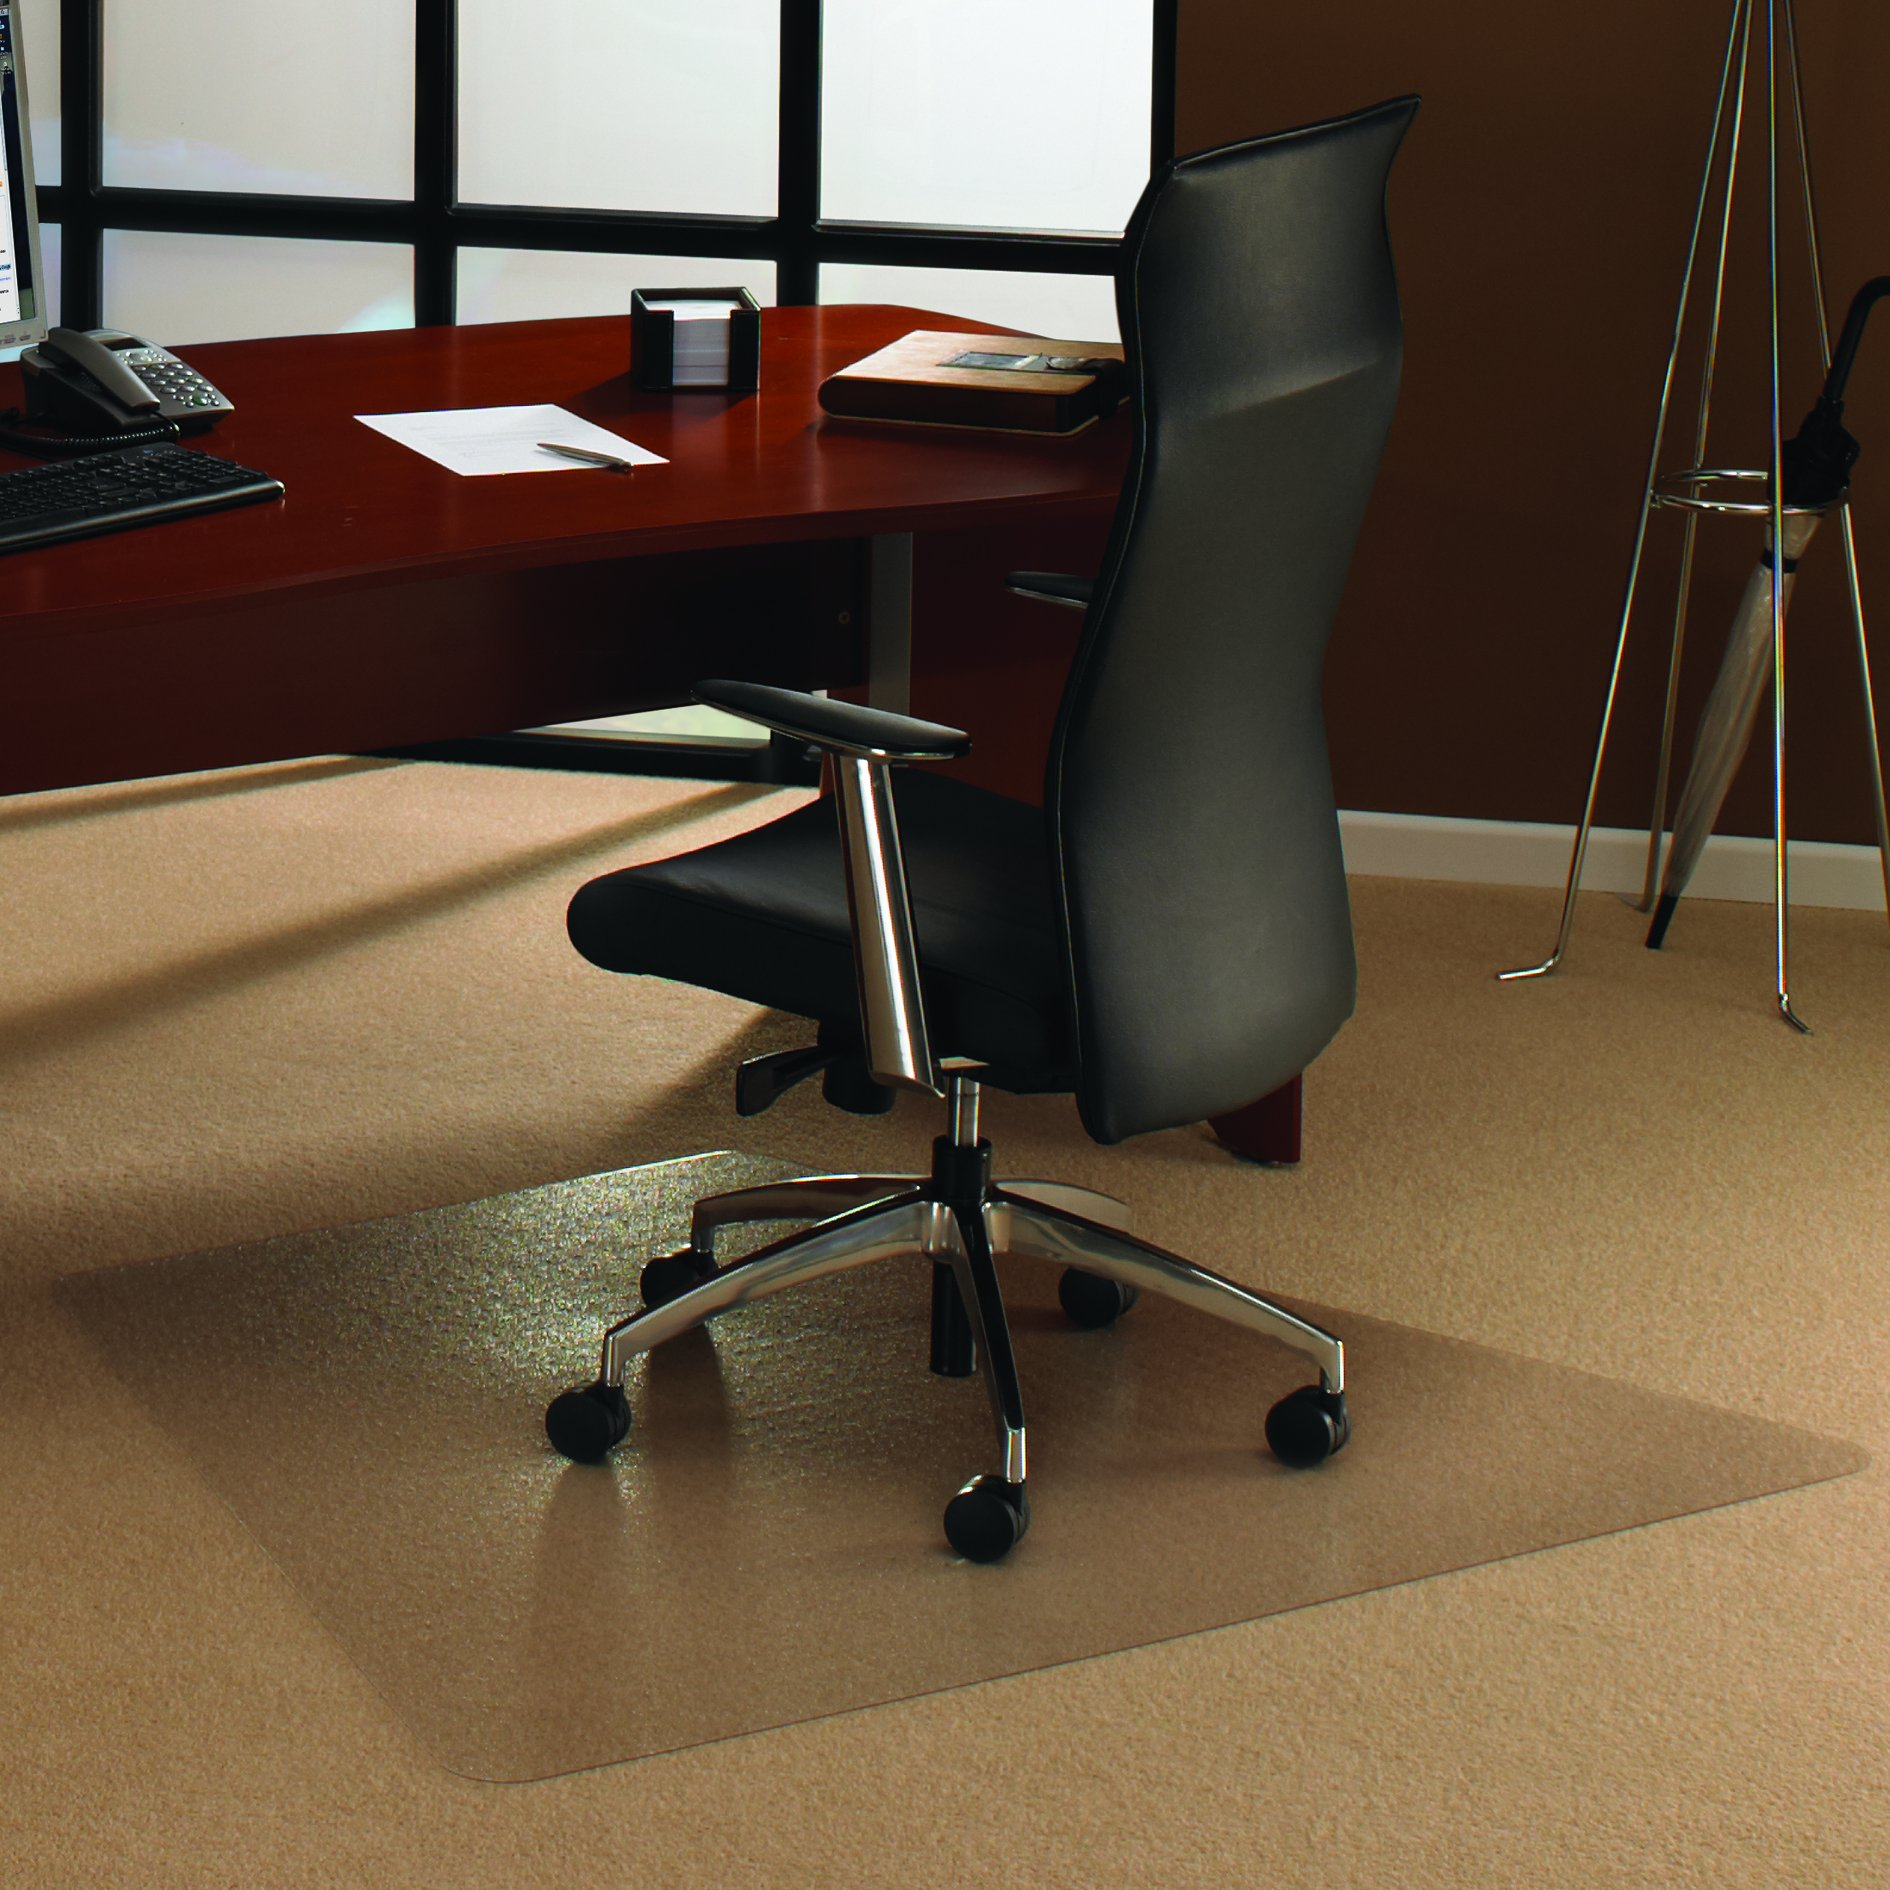 Floortex Ultimate Polycarbonate Chair Mat for Carpets to 1/2'', 59''x47'', Corner Workstation, Clear (FC1115023TR)